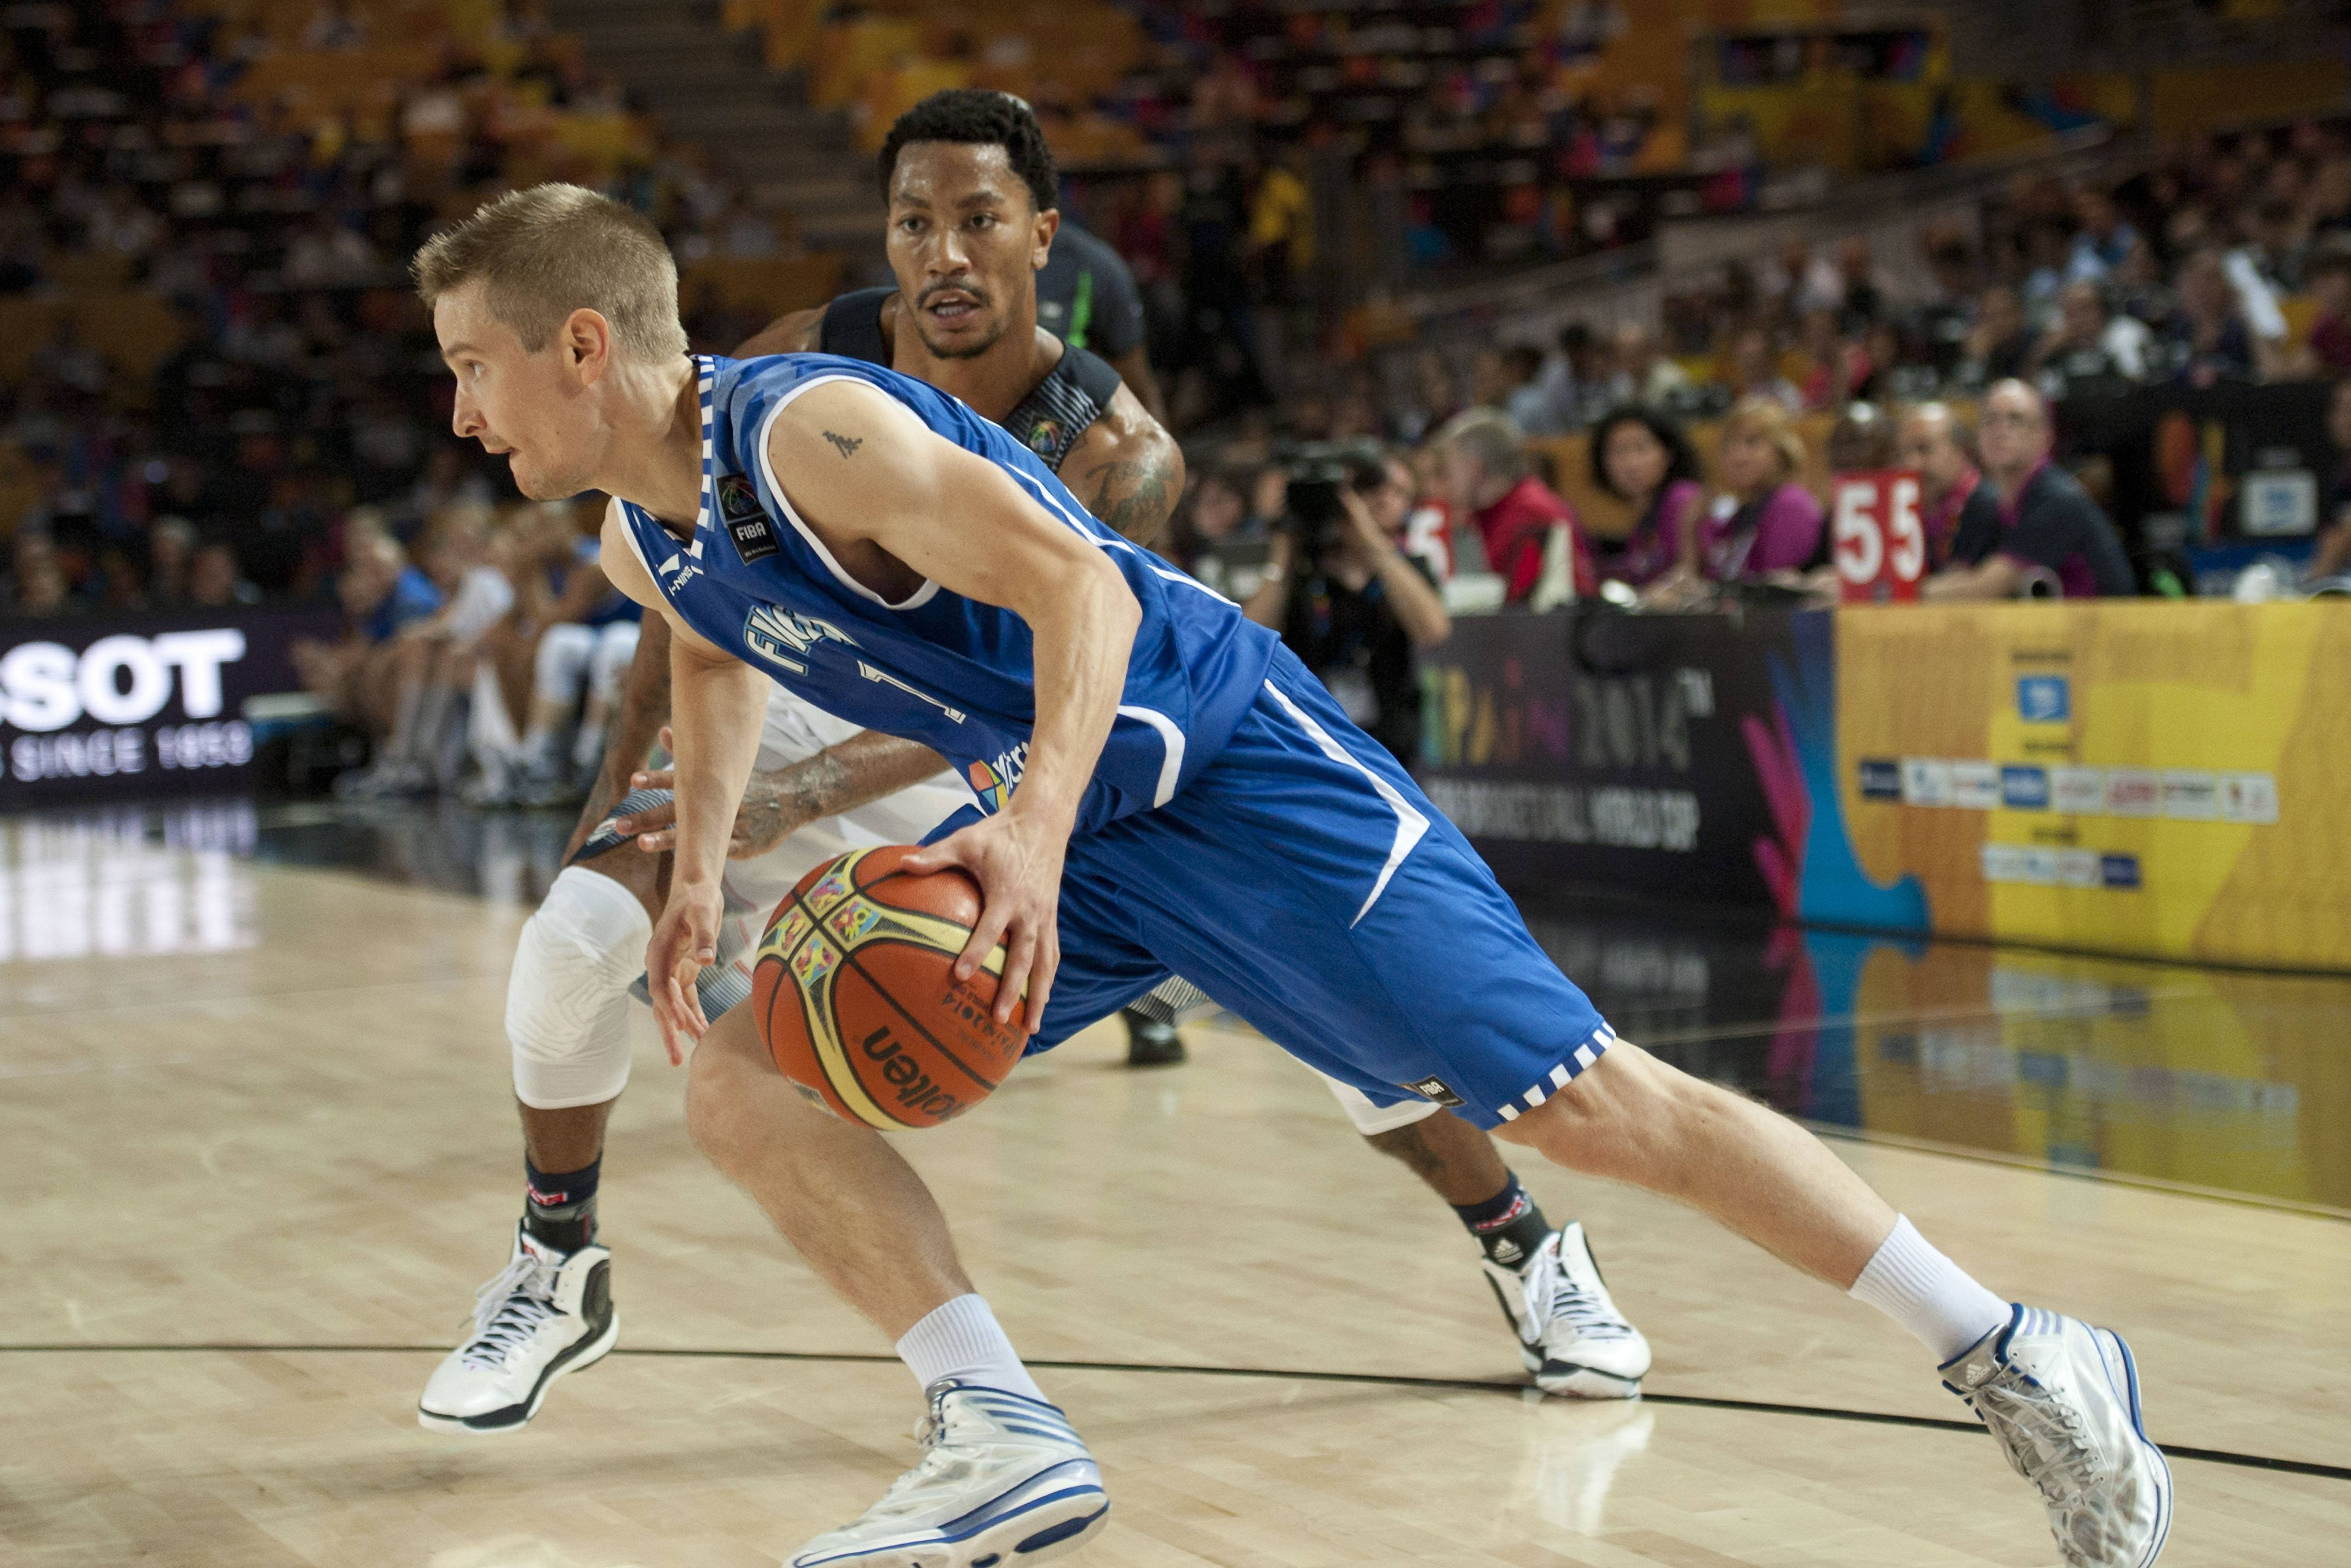 Finland's Mikko Koivisto, front, controls the ball beside United States's Derrick Rose of the Bulls, during their match at the Basketball World Cup Saturday in Bilbao, Spain.